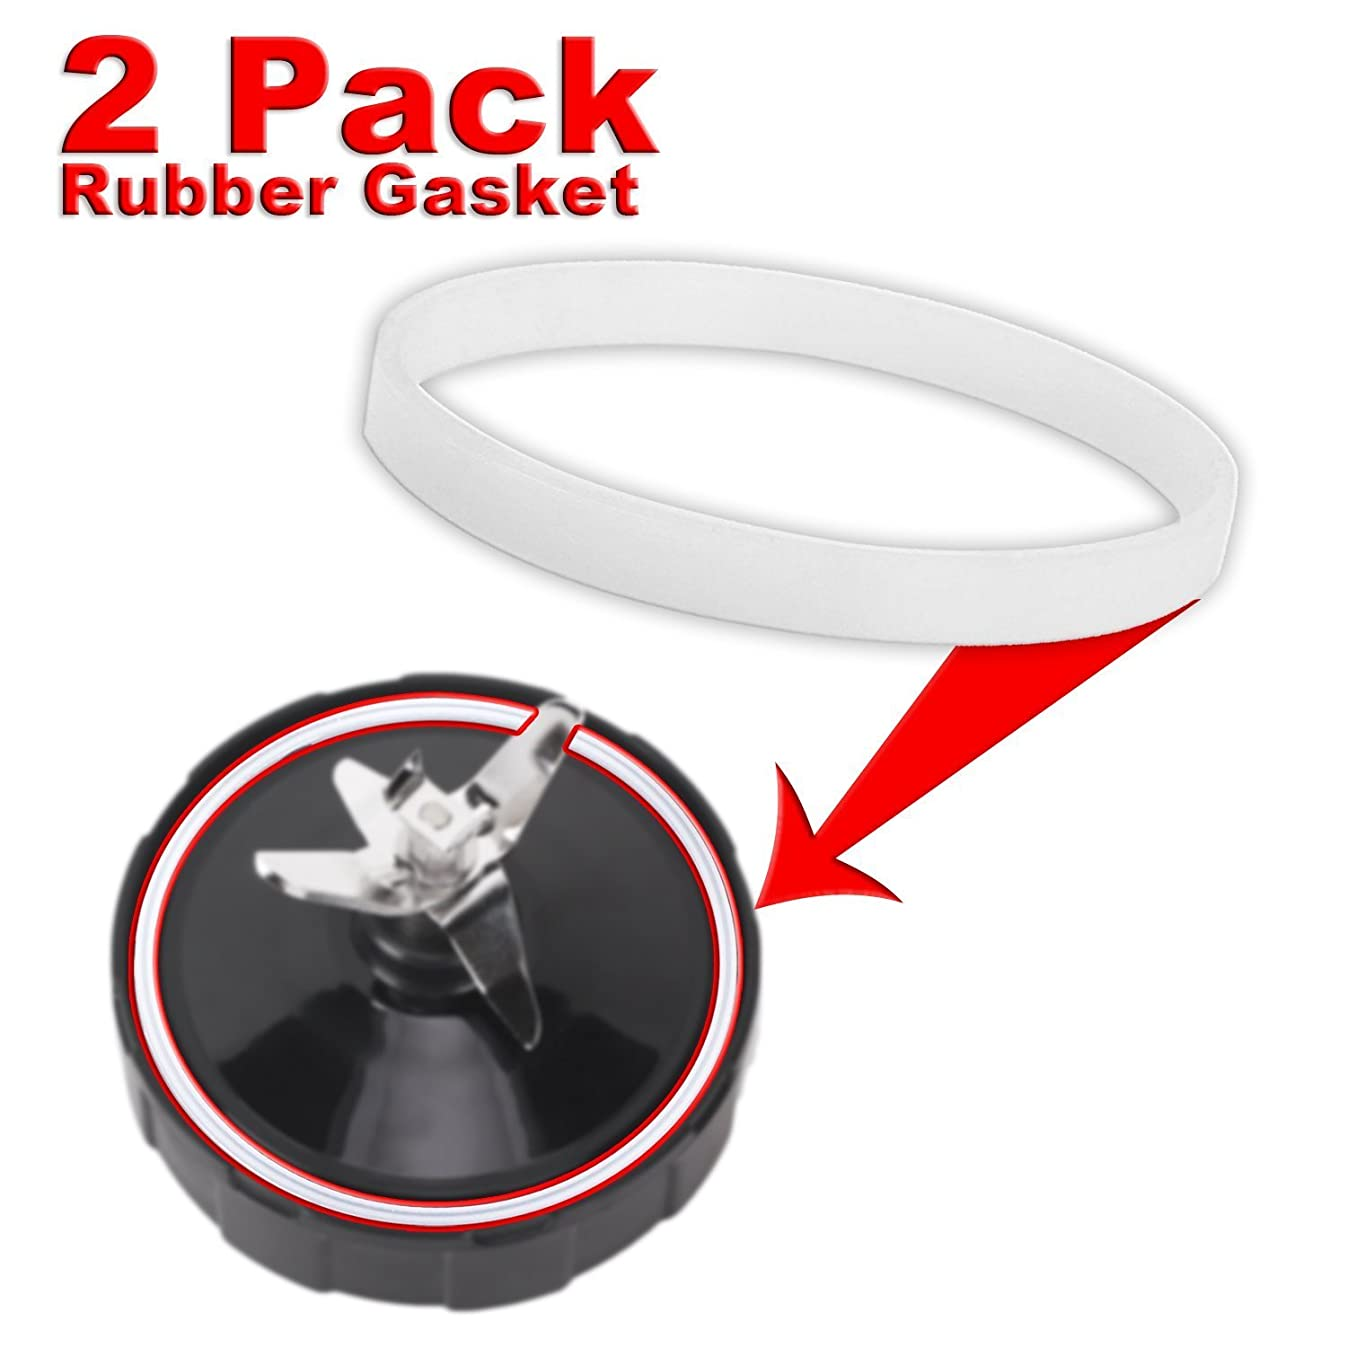 ELEFOCUS Replacement Rubber Gasket Parts for 900w 1000w Nutri Ninja Blender Auto-IQ – 2 Pack (2 Pack Rubber Gasket)